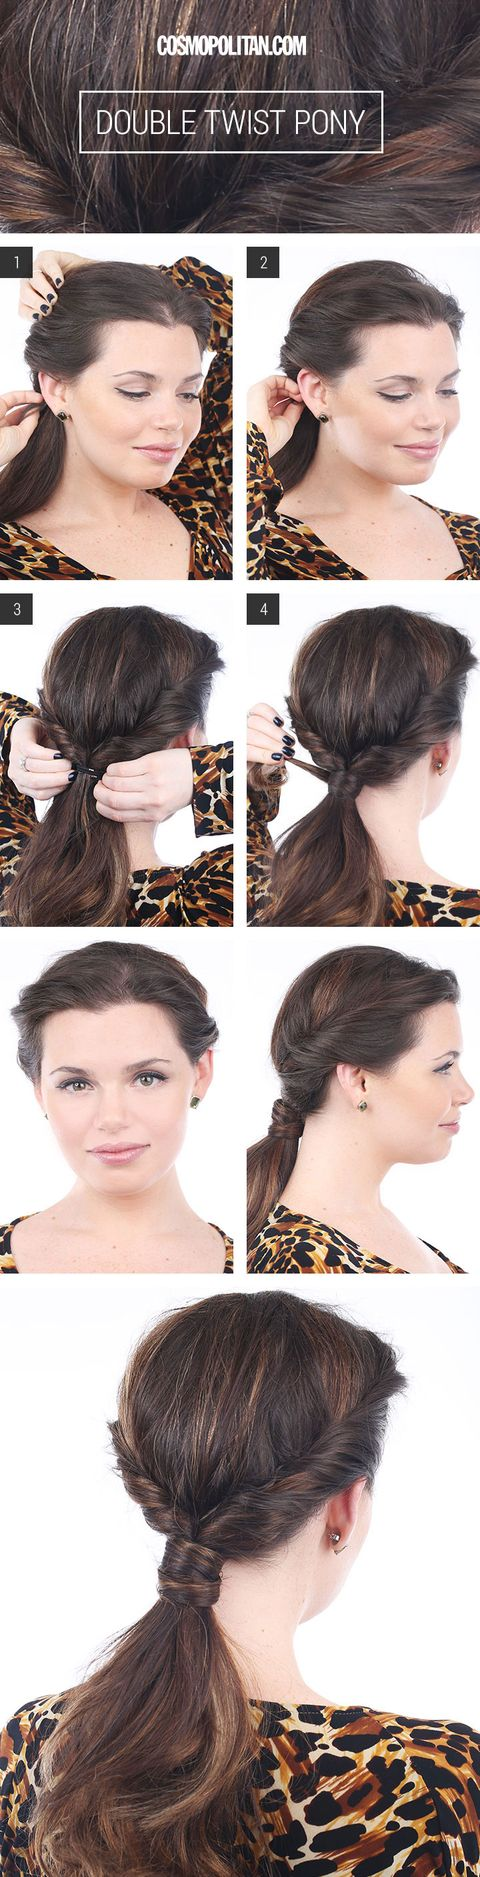 Double Twist Ponytail Hairstyles For Long Hair